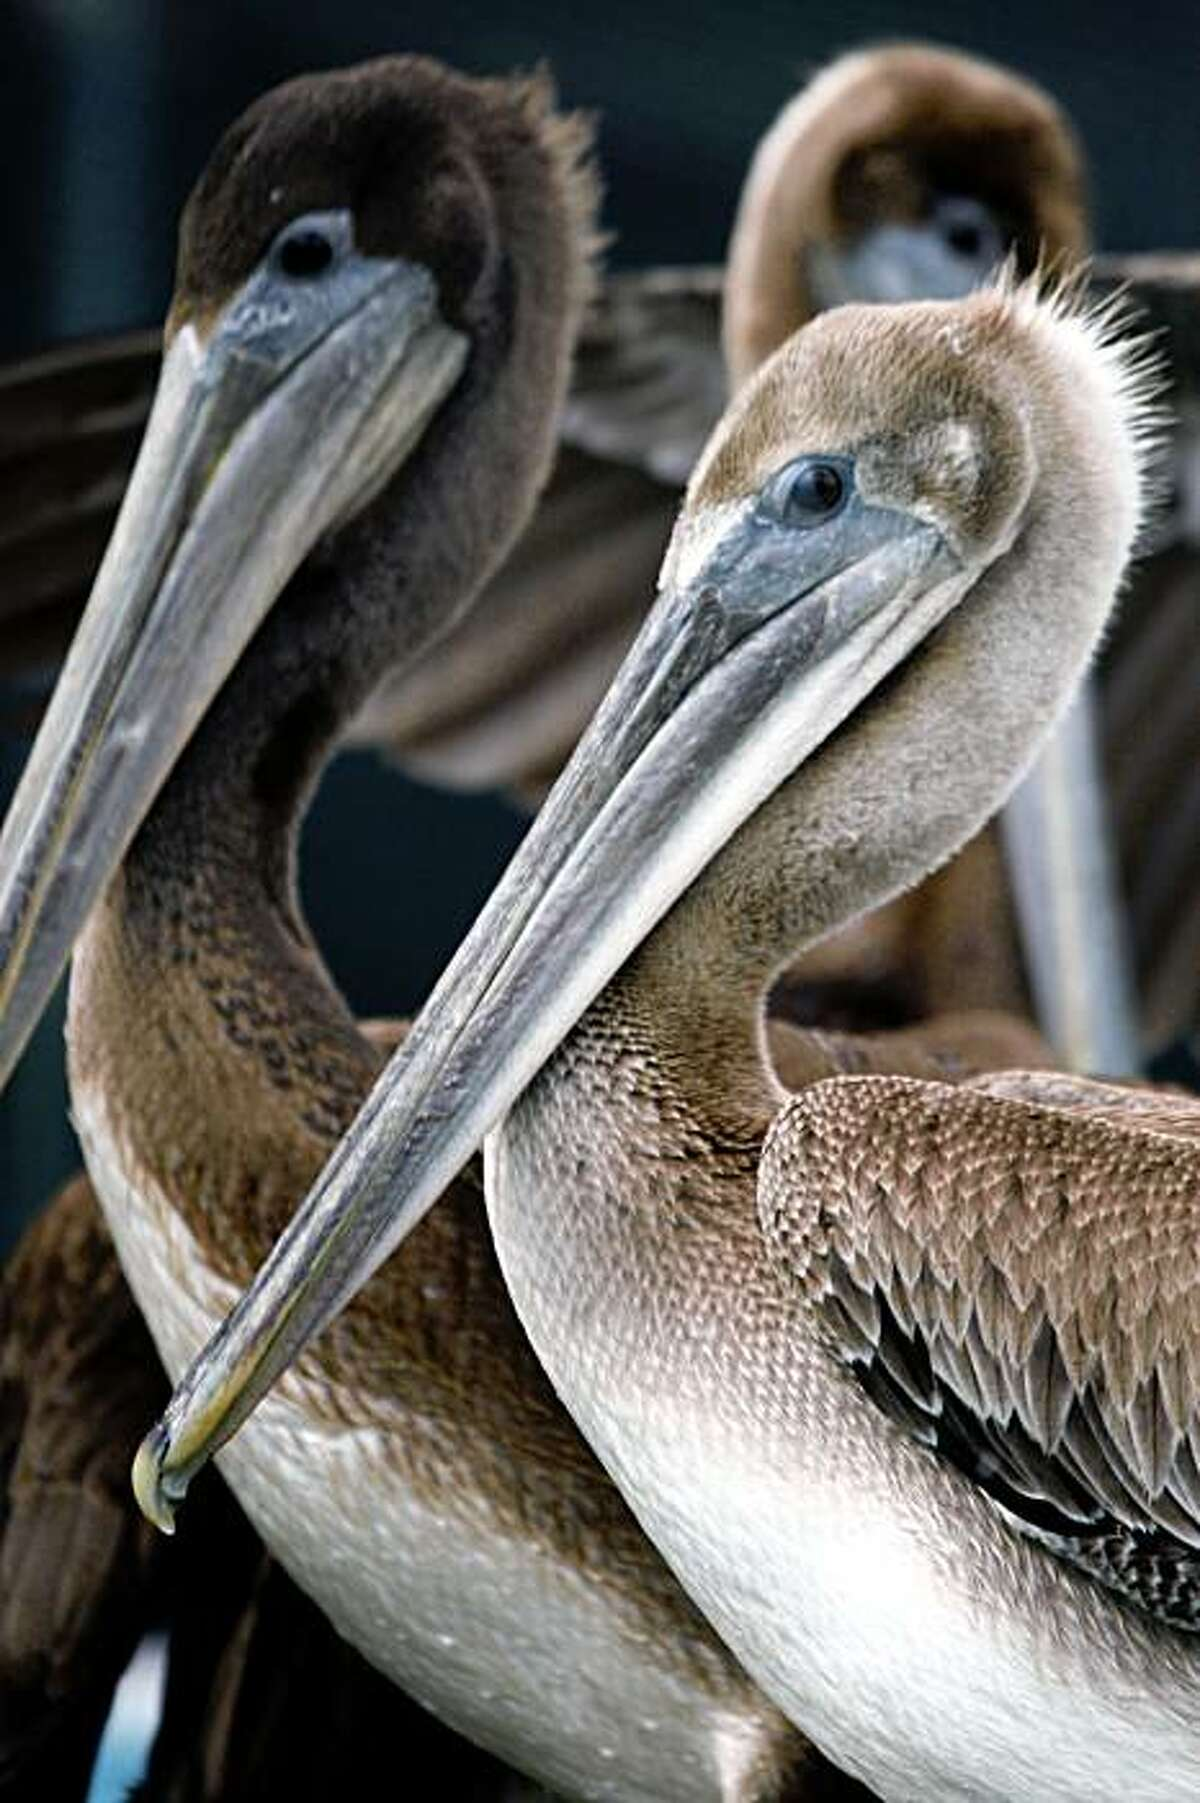 California brown pelicans are being treated at the International Bird Rescue Research Center in Cordelia, many have been operated on after ingesting fishing line with hooks attached or wrapped in the lines off Santa Cruz and Northern Calif waters before being rescued. This Saturday is the annual Coastal cleanup day, promoters of the one day event are hoping to remove some of the worst types of marine debris in the environment, all types plastic, fishing debris, and garbage. Photographed in Cordelia Tuesday Sept 16, 2008.